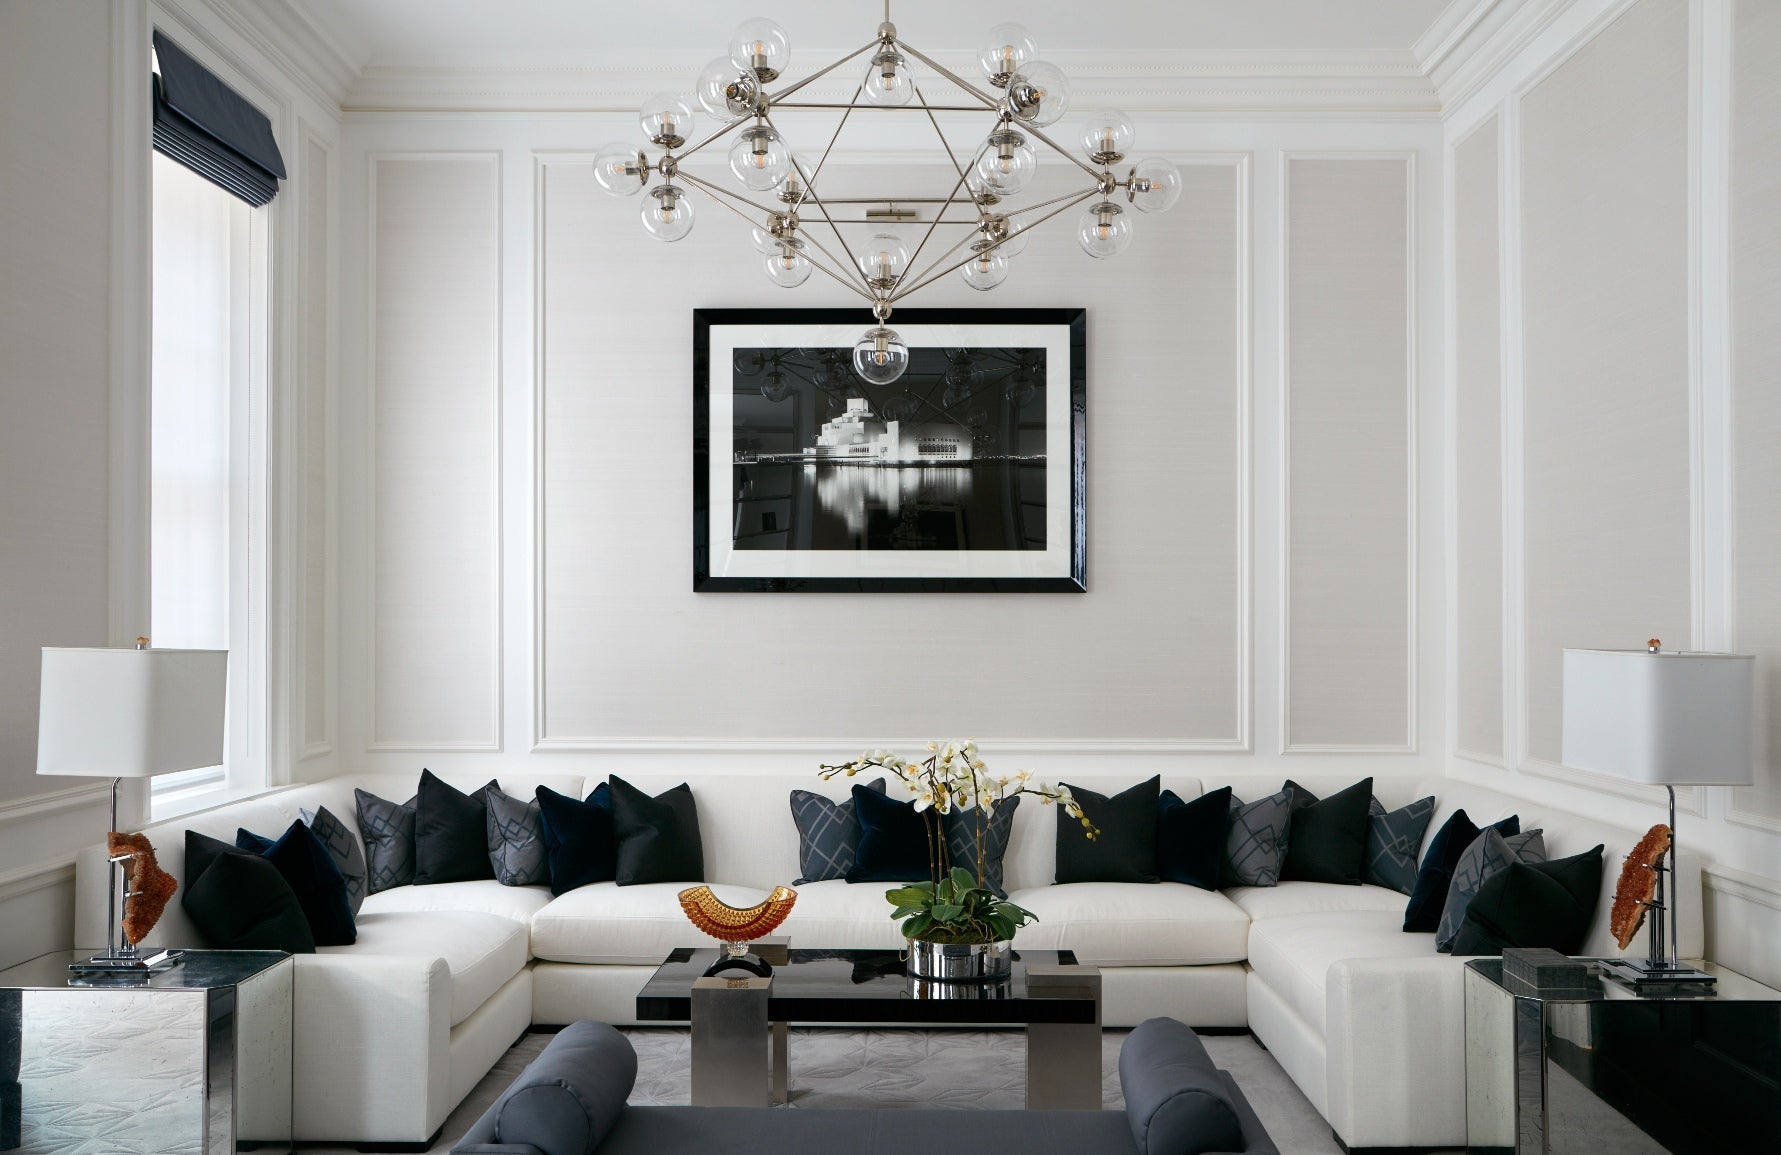 Living Room Furniture Arrangement | Neutral Living Room | LuxDeco Interior Design | Shop the pieces at LuxDeco.com